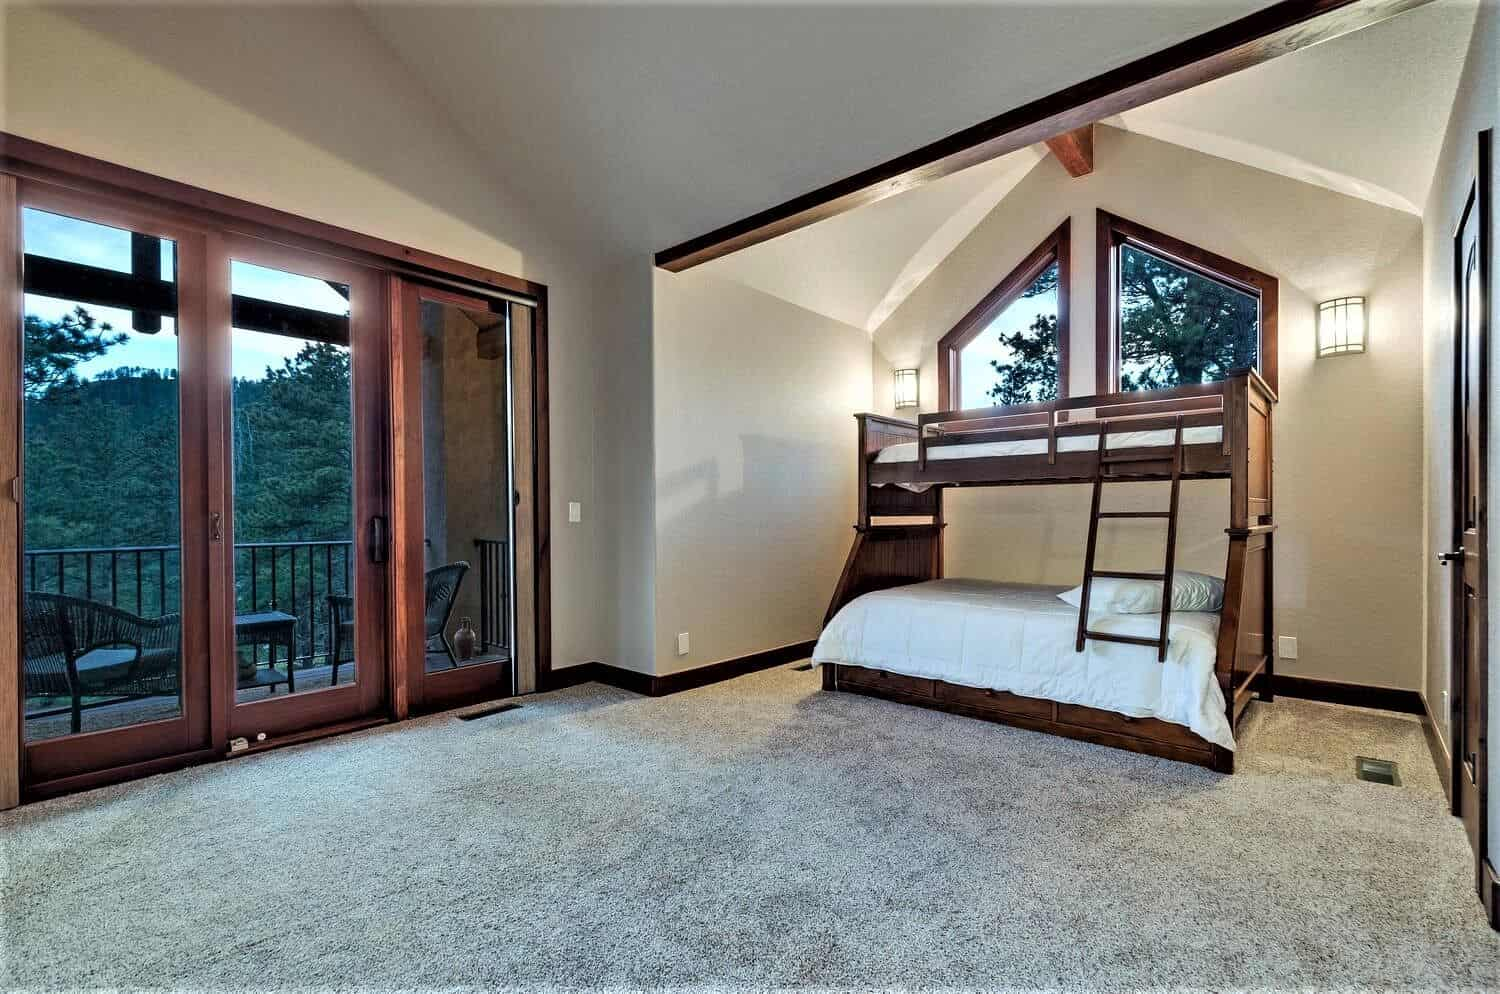 Upper Bedroom 3 with Walkin Closet and Ensuite Bathroom and Covered Deck